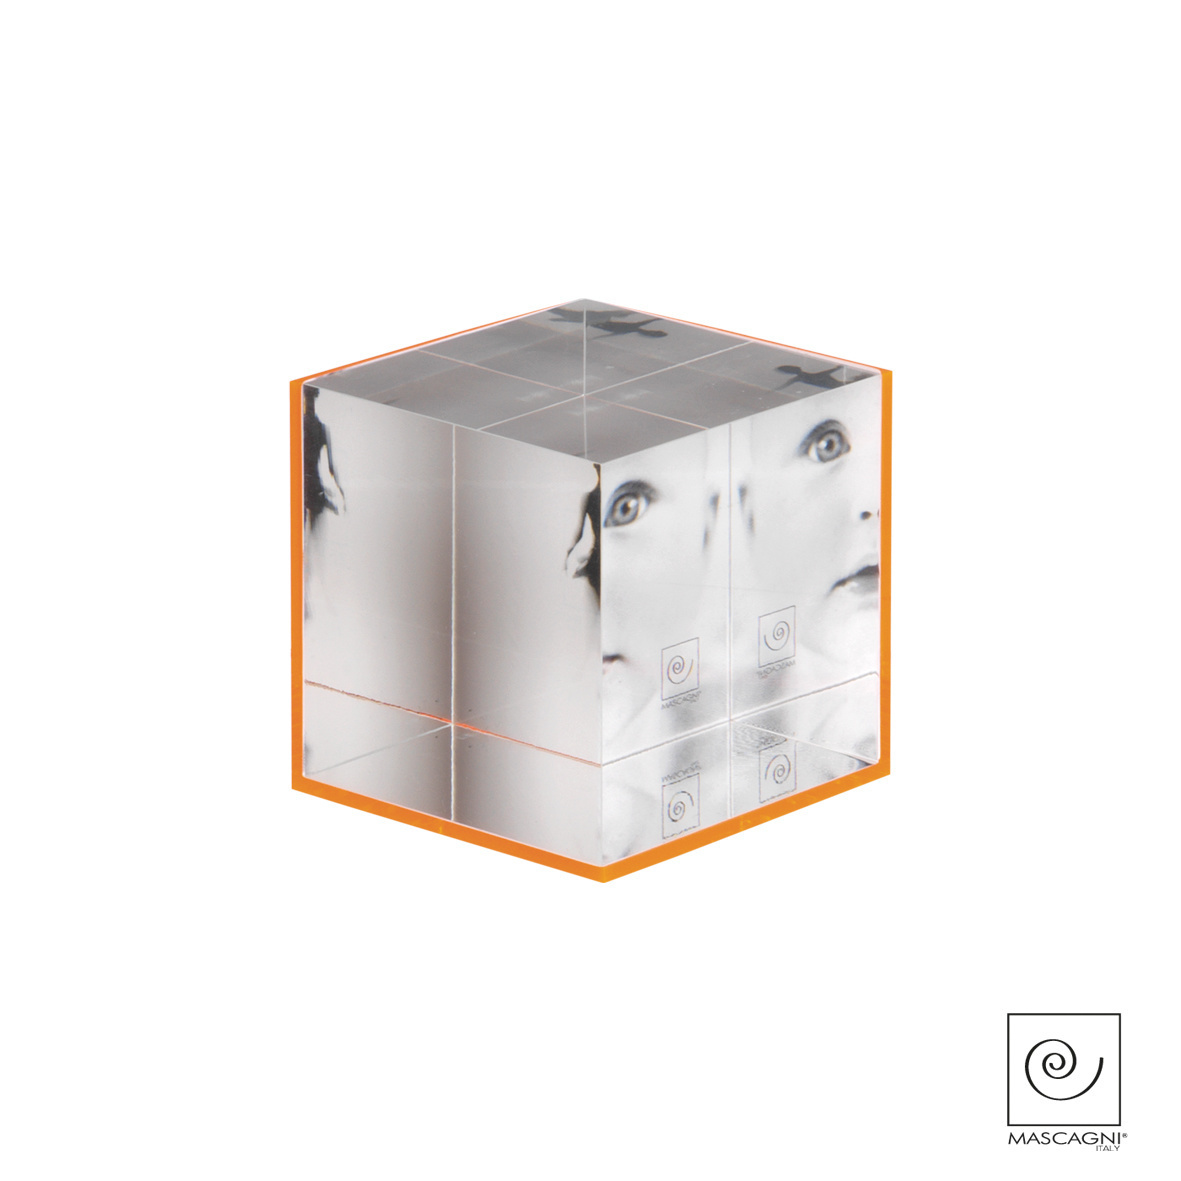 Art Mascagni A850 CUBE - COL.ORANGE